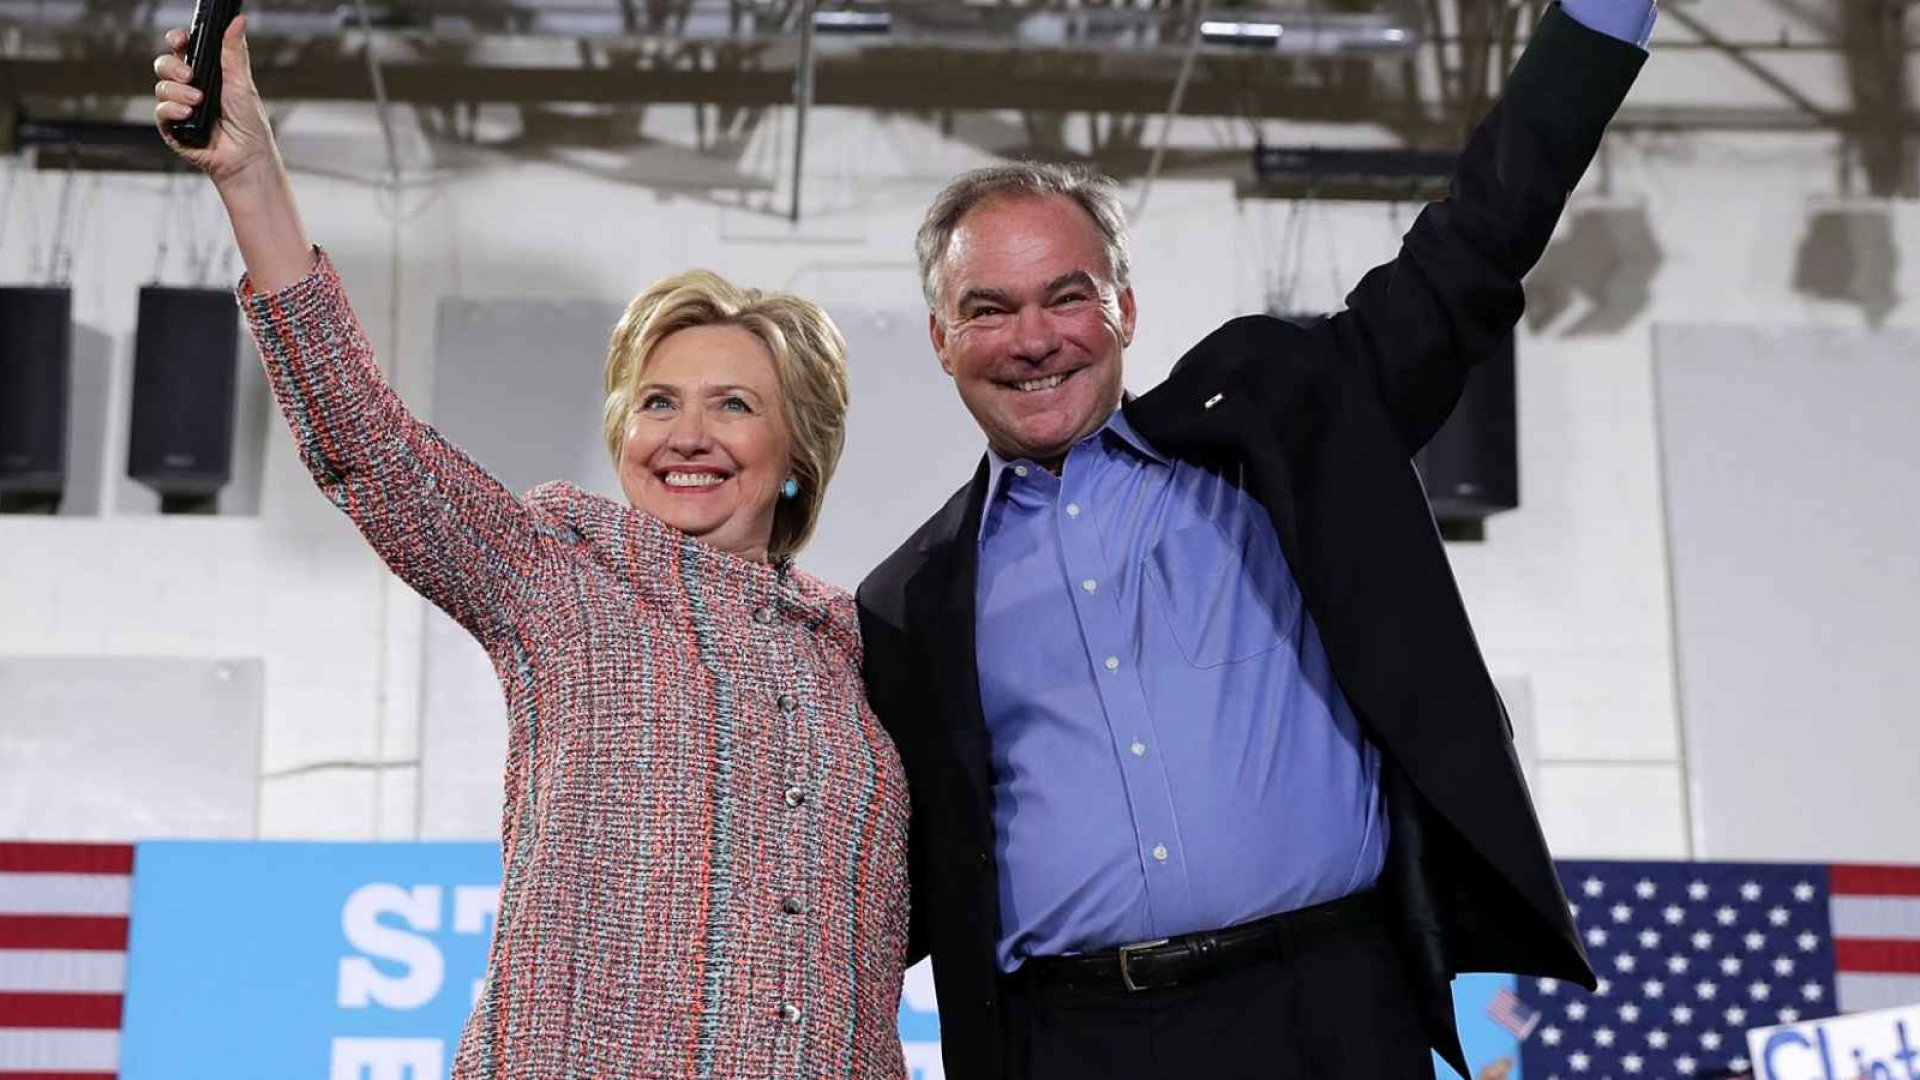 How Business and Tech Reacted to Hillary Clinton Choosing Tim Kaine